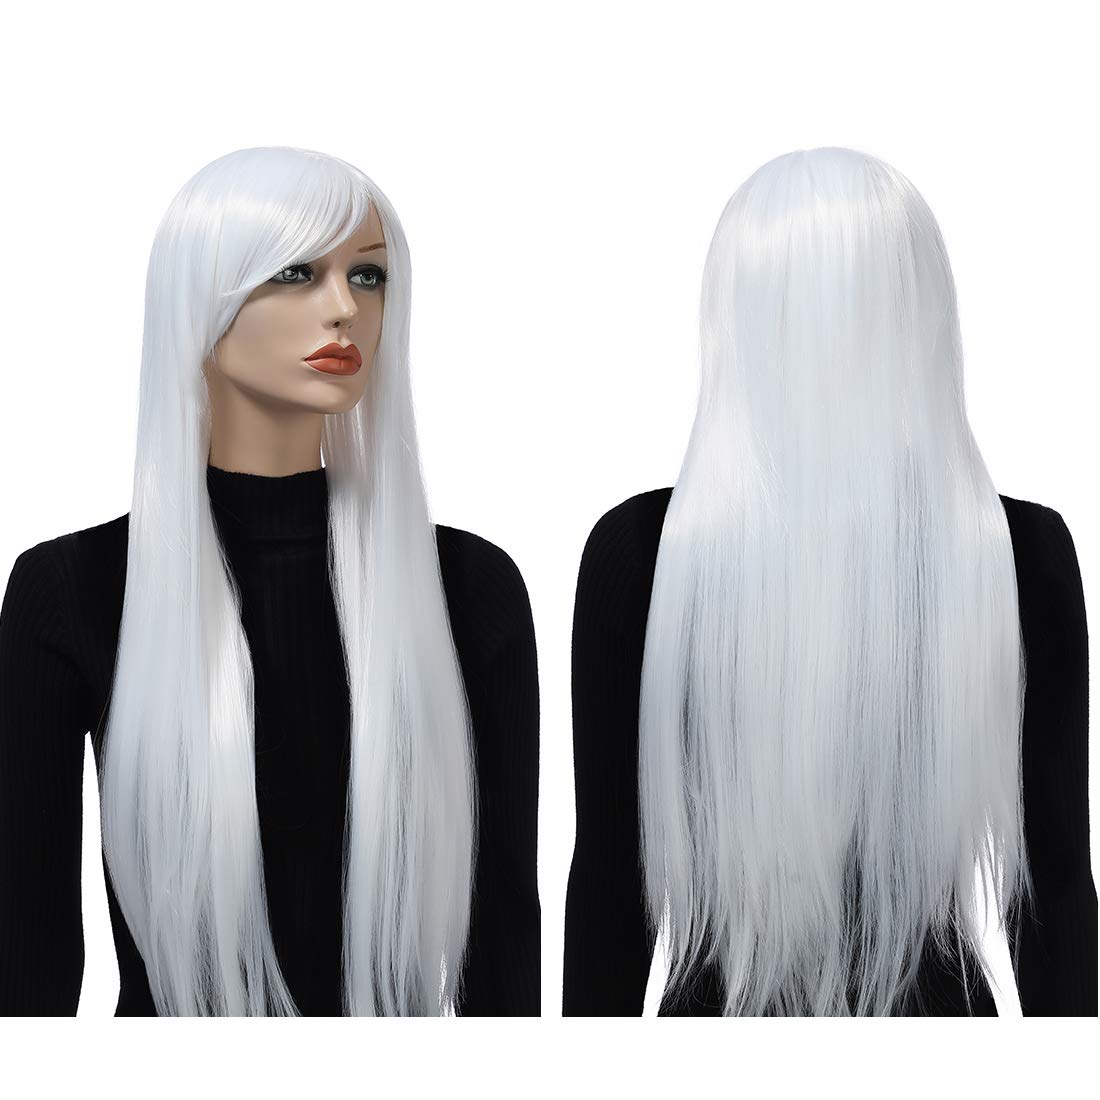 Wigood 32 Cosplay White Wig Long Straight Wig Halloween Costumes With Bangs Anime Costume Party Wigs With Free Wig Cap For Women White Buy Online In Isle Of Man At Desertcart Productid